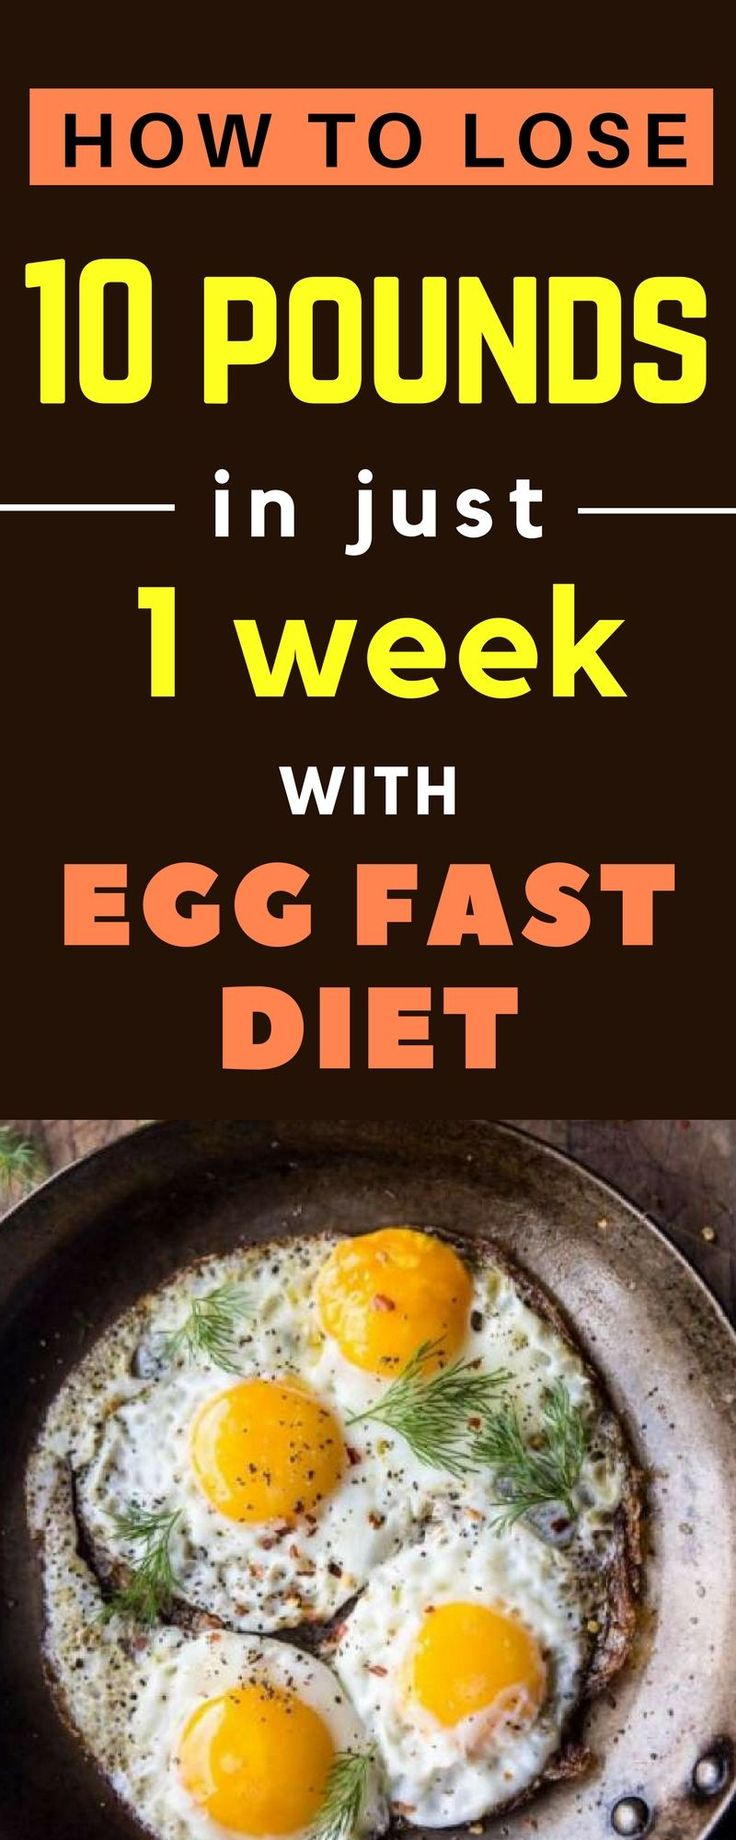 This Egg Fast diet for weight loss is easy to follow. You can lose about 10 poun…